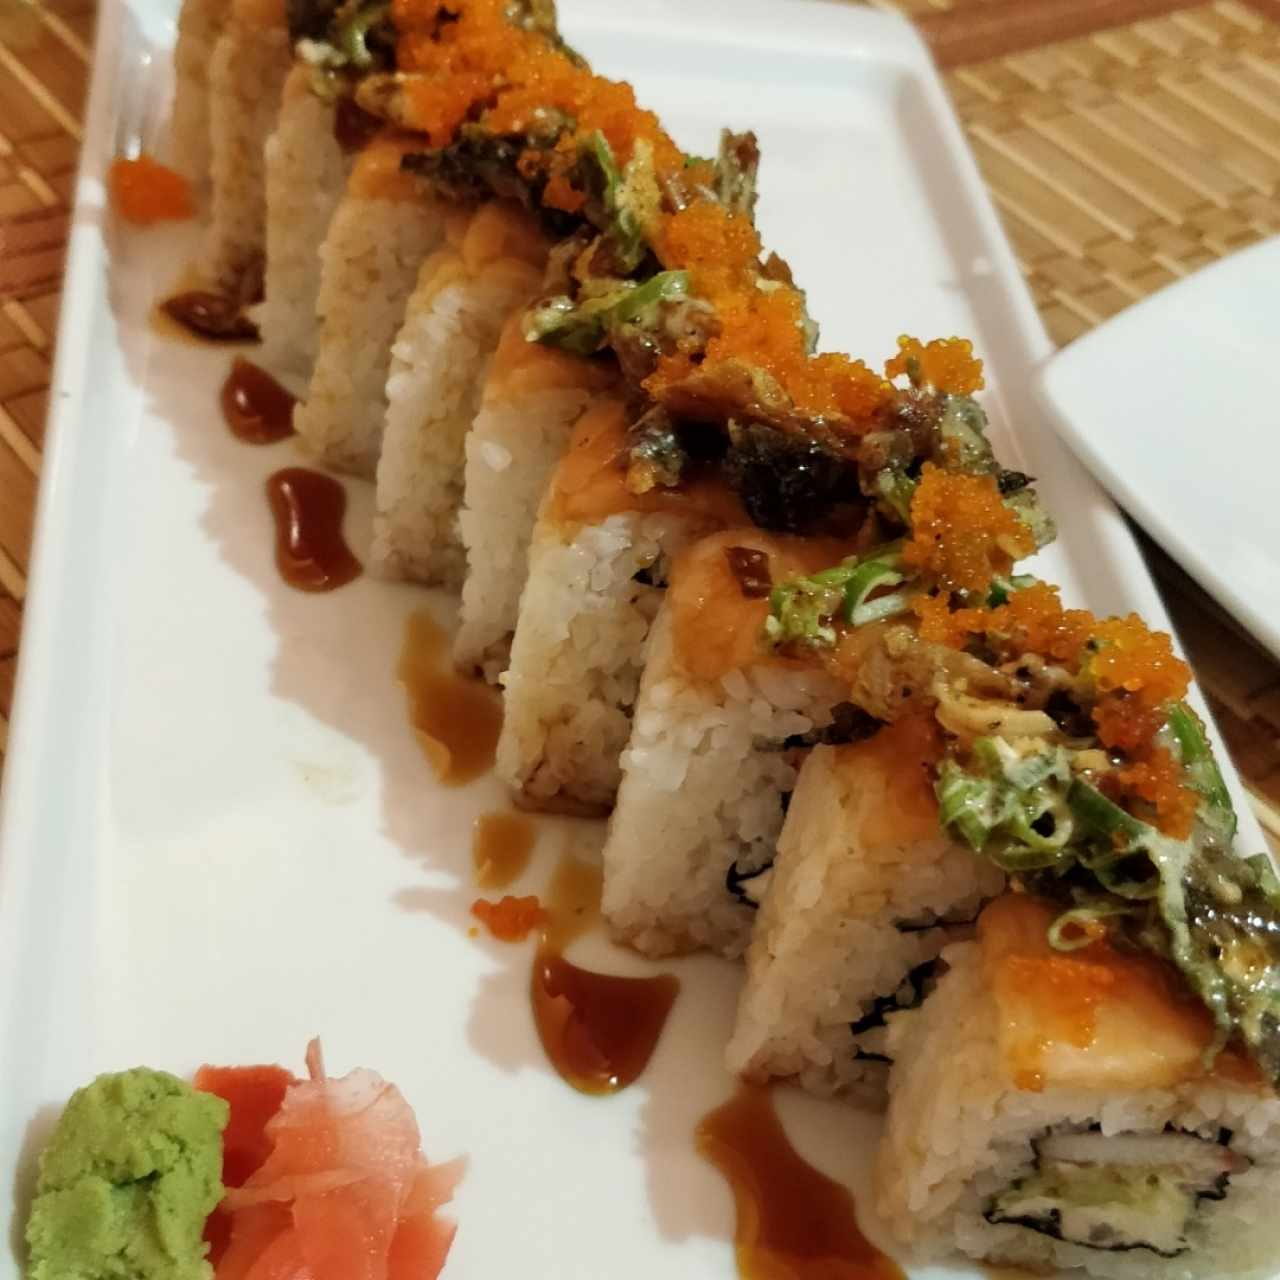 Sushi Rolls - Bellagio Roll